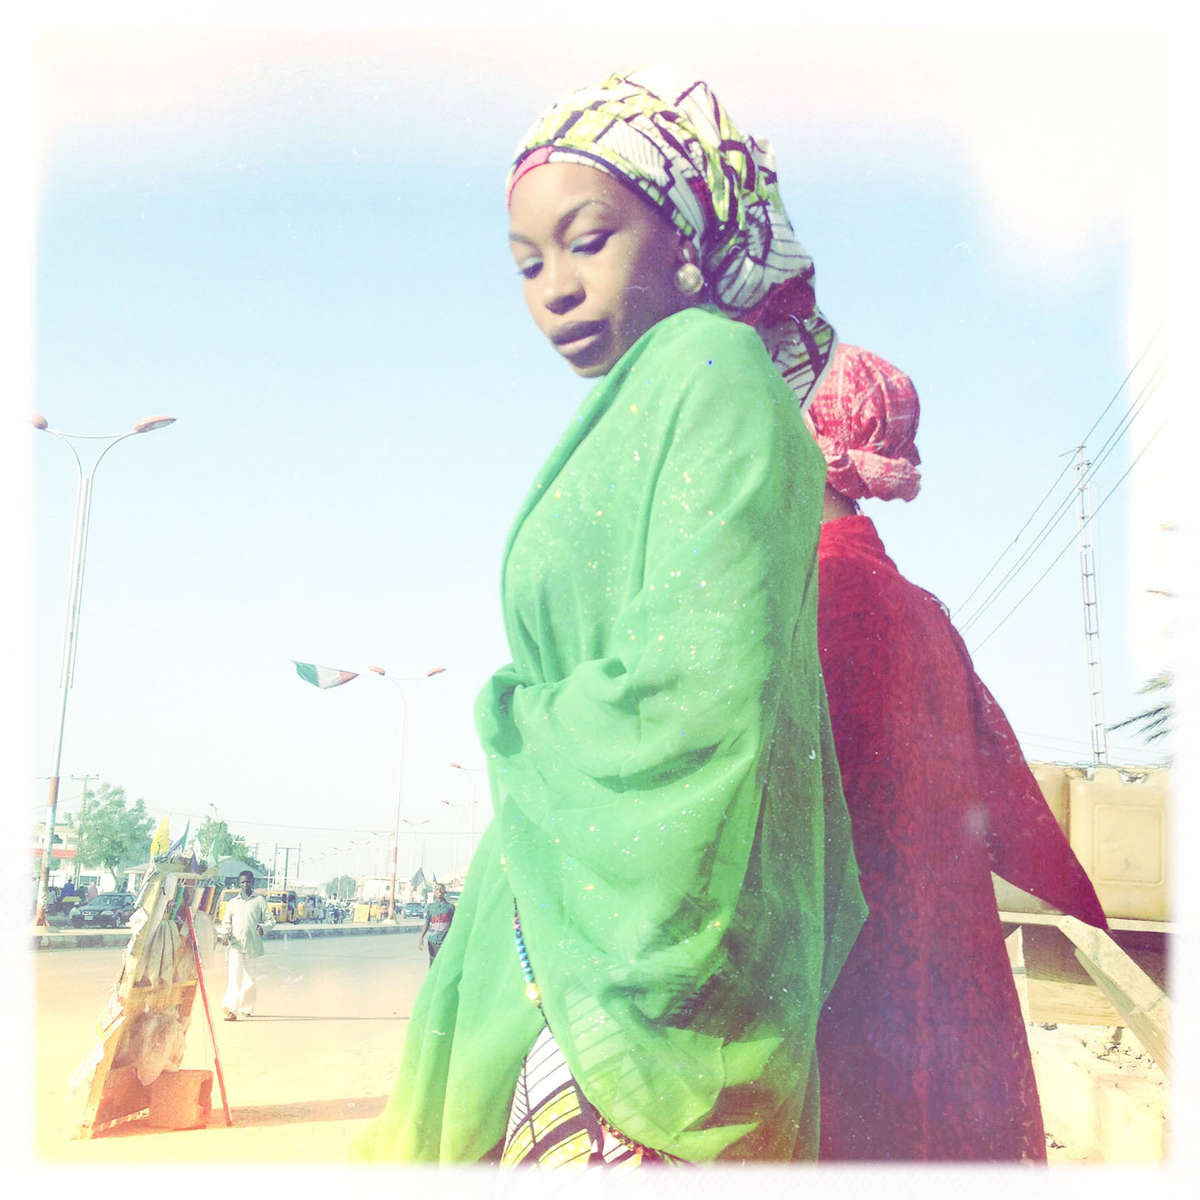 Pretty ladies in Kano, Northern Nigeria. April 2013.